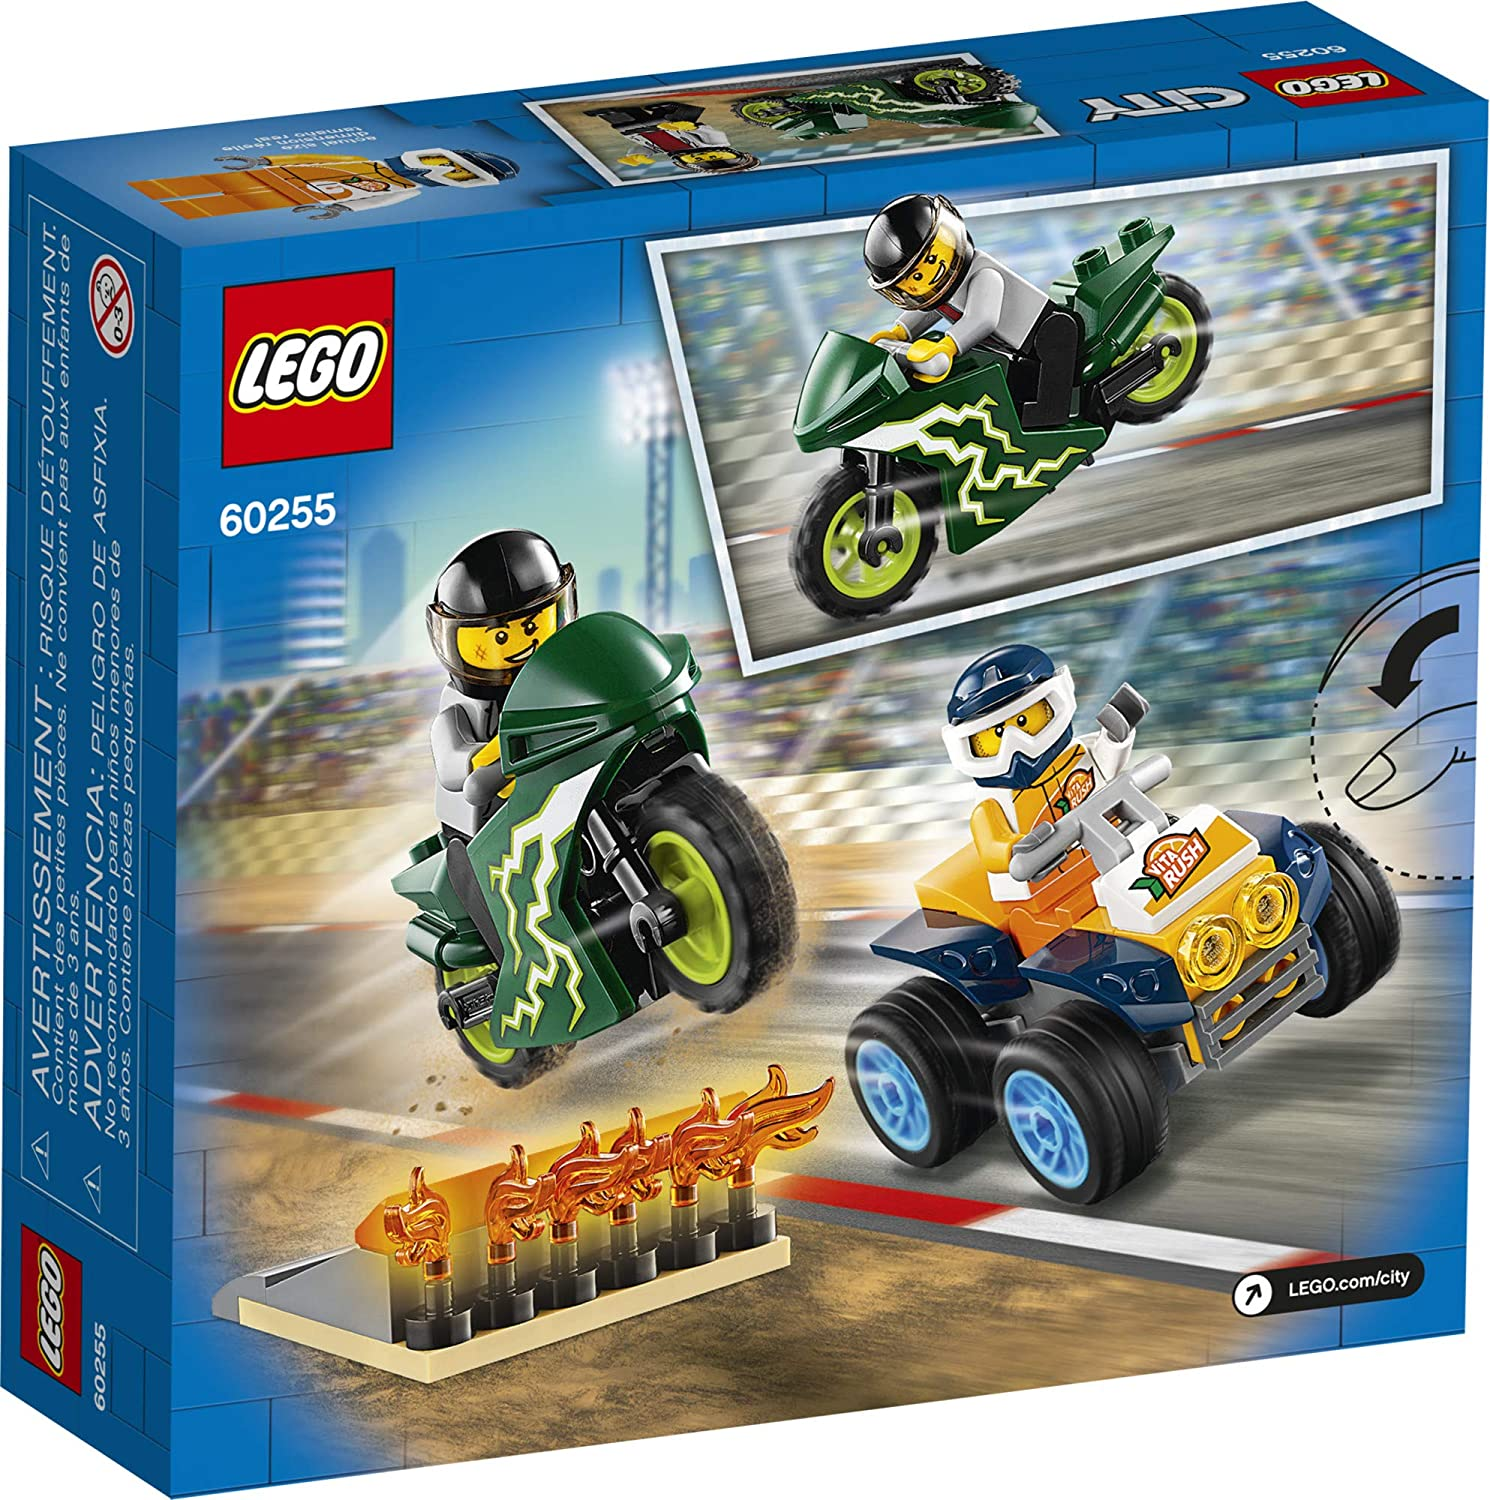 New 2020 62 Pieces Cool Building Set for Kids LEGO City Stunt Team 60255 Bike Toy